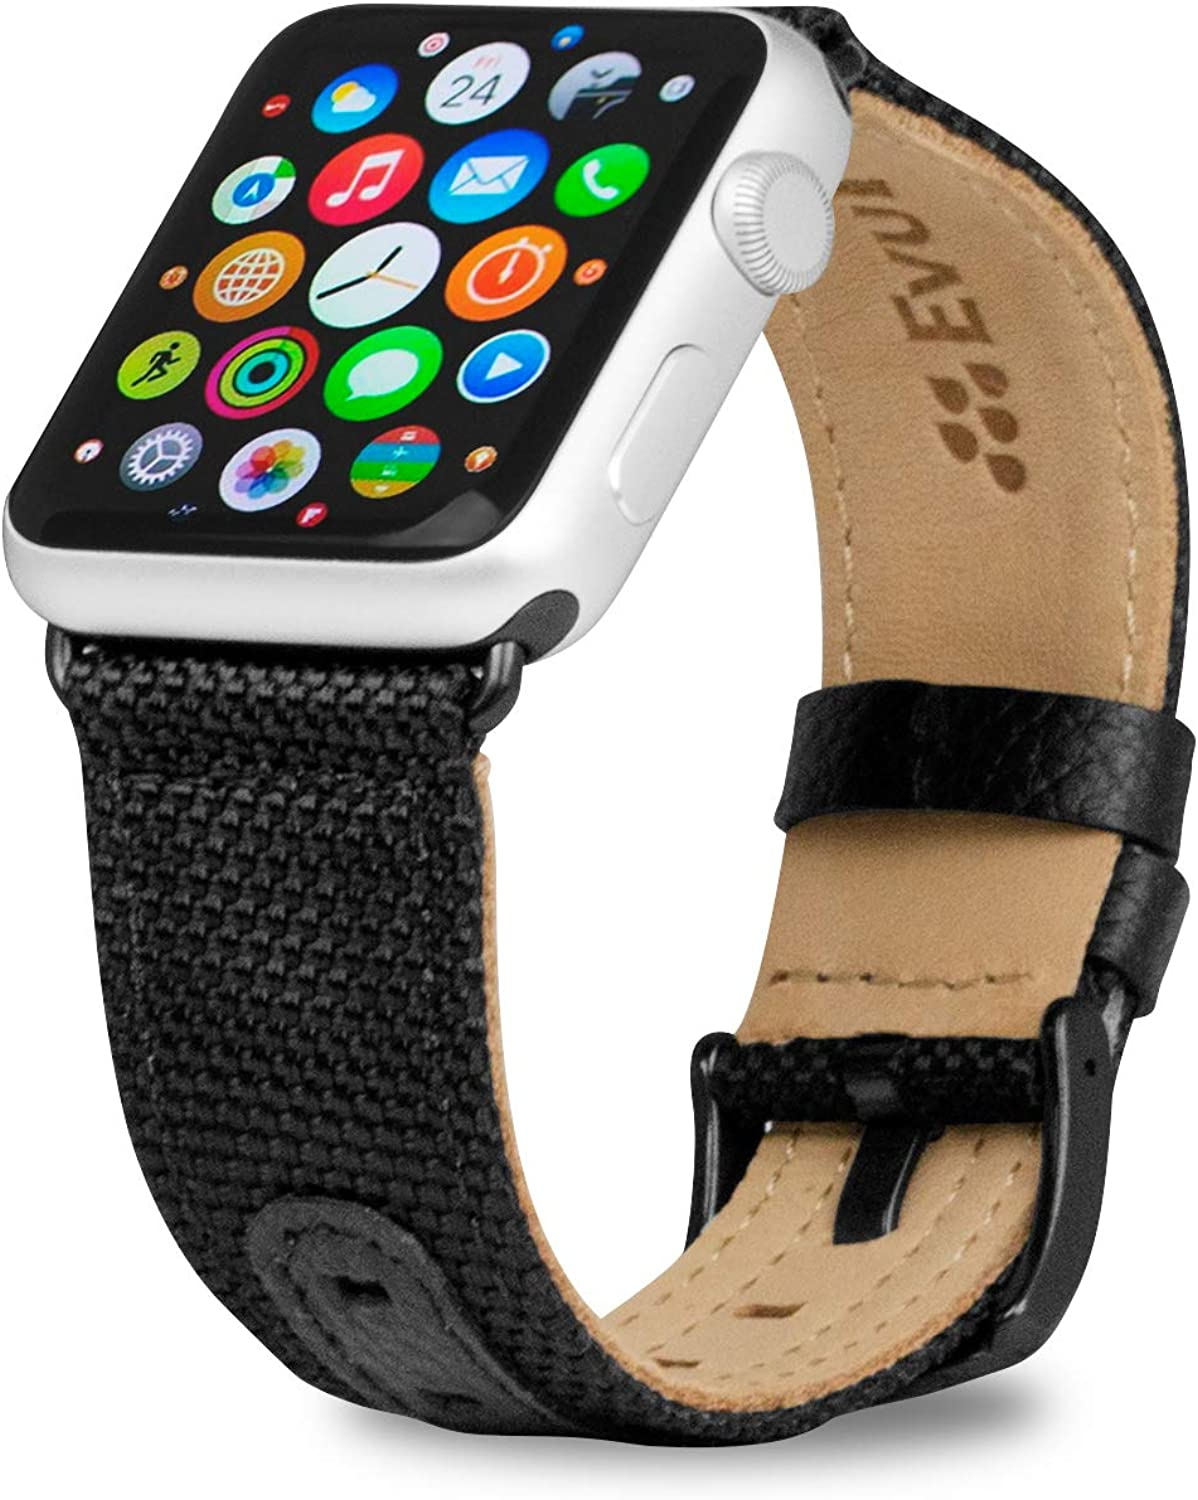 Evutec Band Compatible with Apple Watch Band 42mm 44mm, Genuine LeatEvutec Band Compatible with Apple Watch Band 42mm 44mm, Geher iWatch Replacement Strap Series 4, Series 3, Series 2, Series1 (Black)